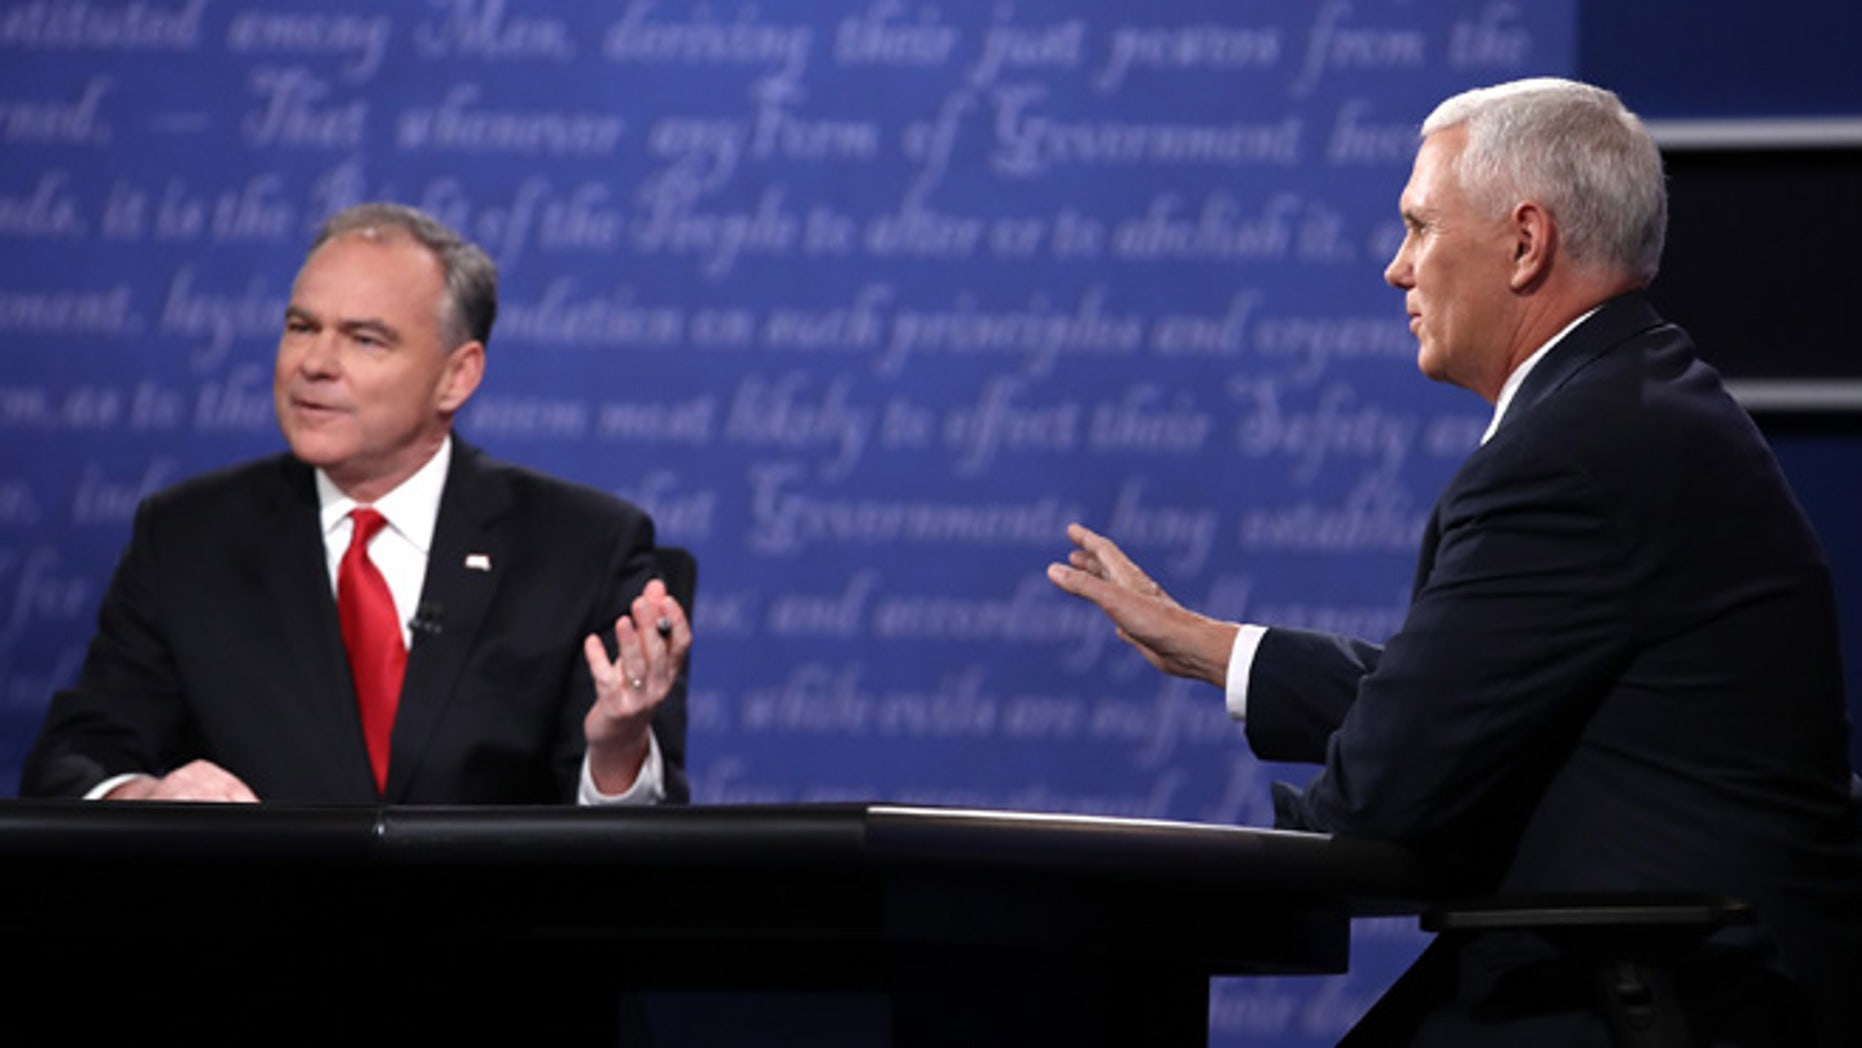 Democratic vice presidential nominee Tim Kaine (L) and Republican vice presidential nominee Mike Pence (R) speak during the Vice Presidential Debate at Longwood University on October 4, 2016 in Farmville, Virginia.  This is the second of four debates during the presidential election season and the only debate between the vice presidential candidates.  (Photo by Win McNamee/Getty Images)